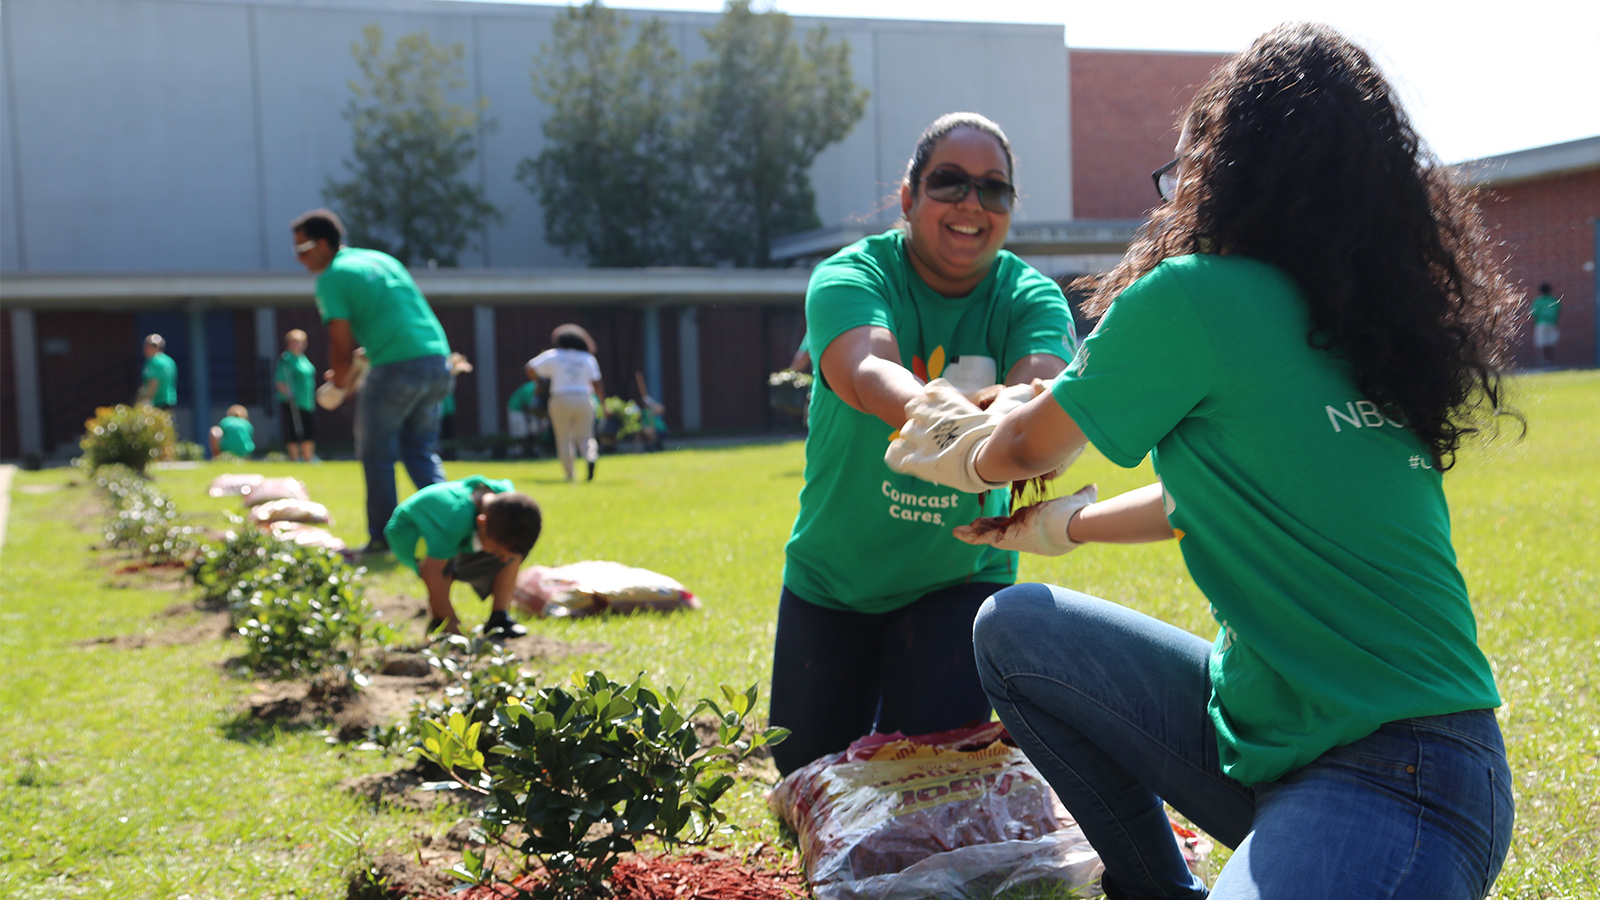 Our 17th annual #ComcastCaresDay is this Saturday, April 21. This #ComcastCaresDay will mark over 1 million volunteers, a milestone we are incredibly proud of. Thank you to past and current employees, friends and family, and community partners for coming together to make change happen in our communities.